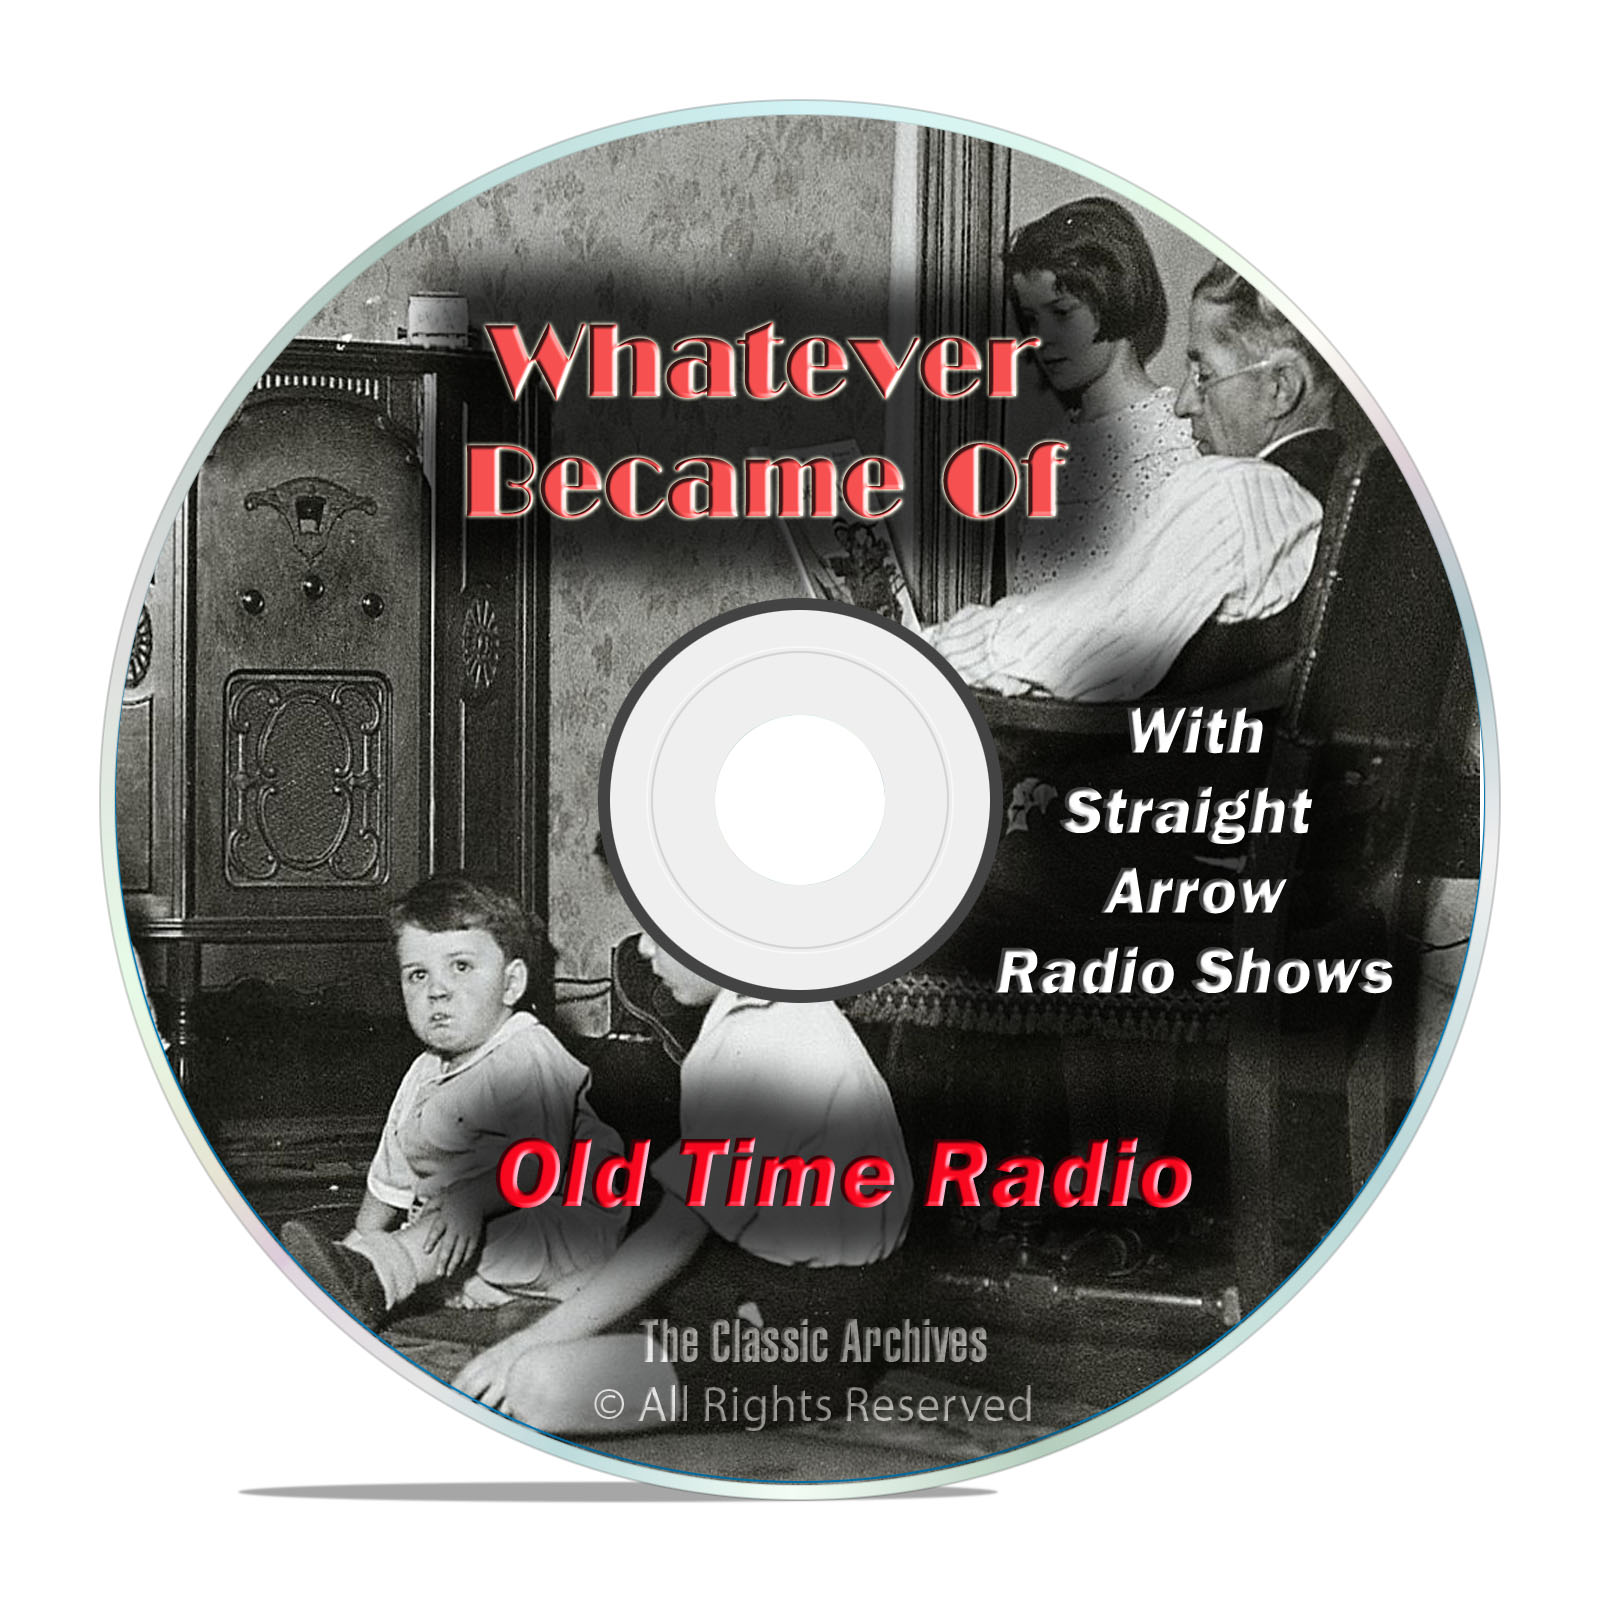 Whatever Became Of, 1,074 Classic Old Time Radio Shows, OTR mp3 DVD